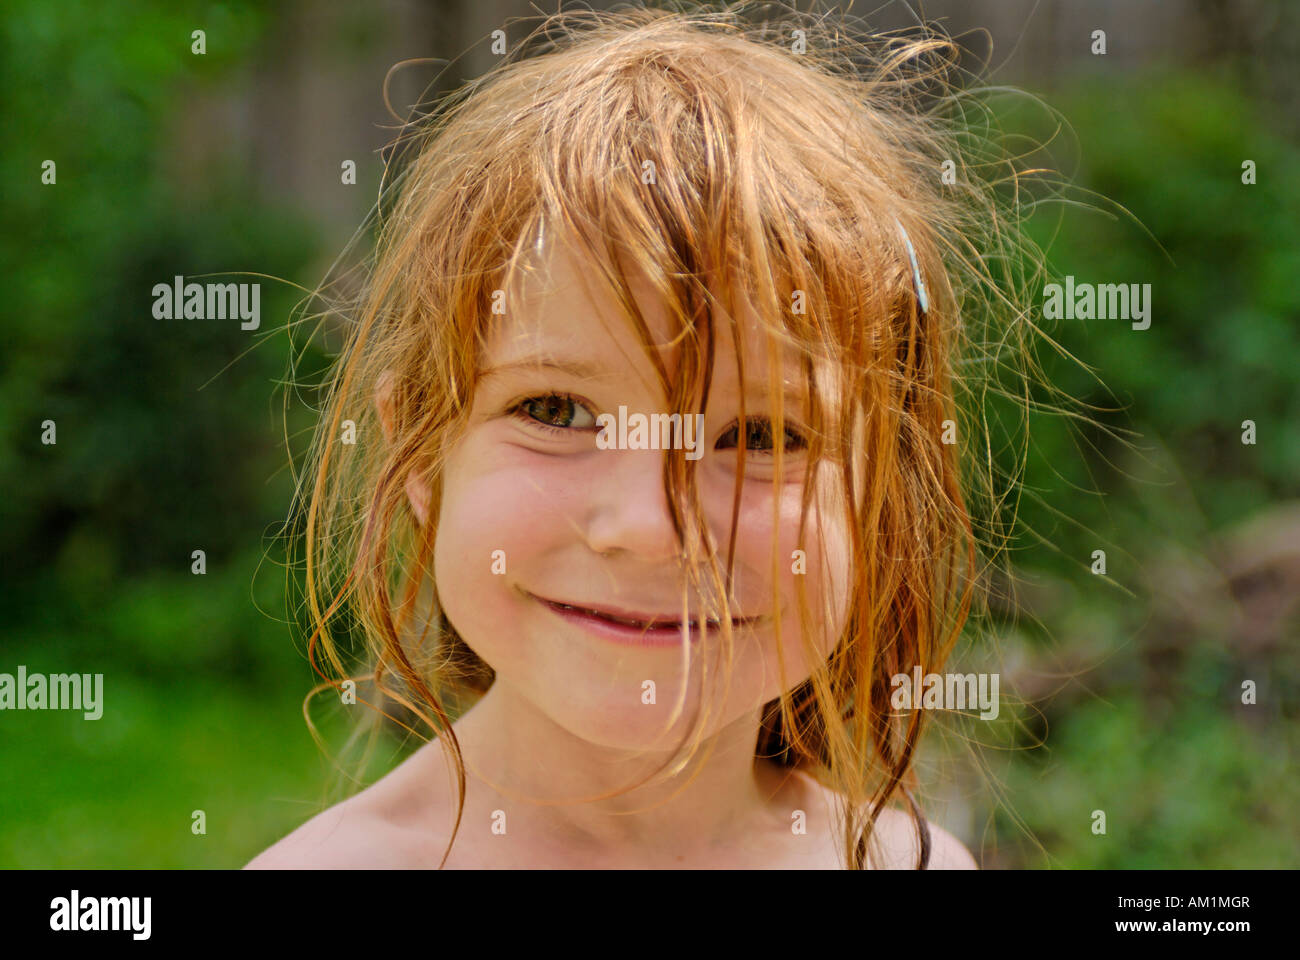 Little girl with wild wet hair - Stock Image